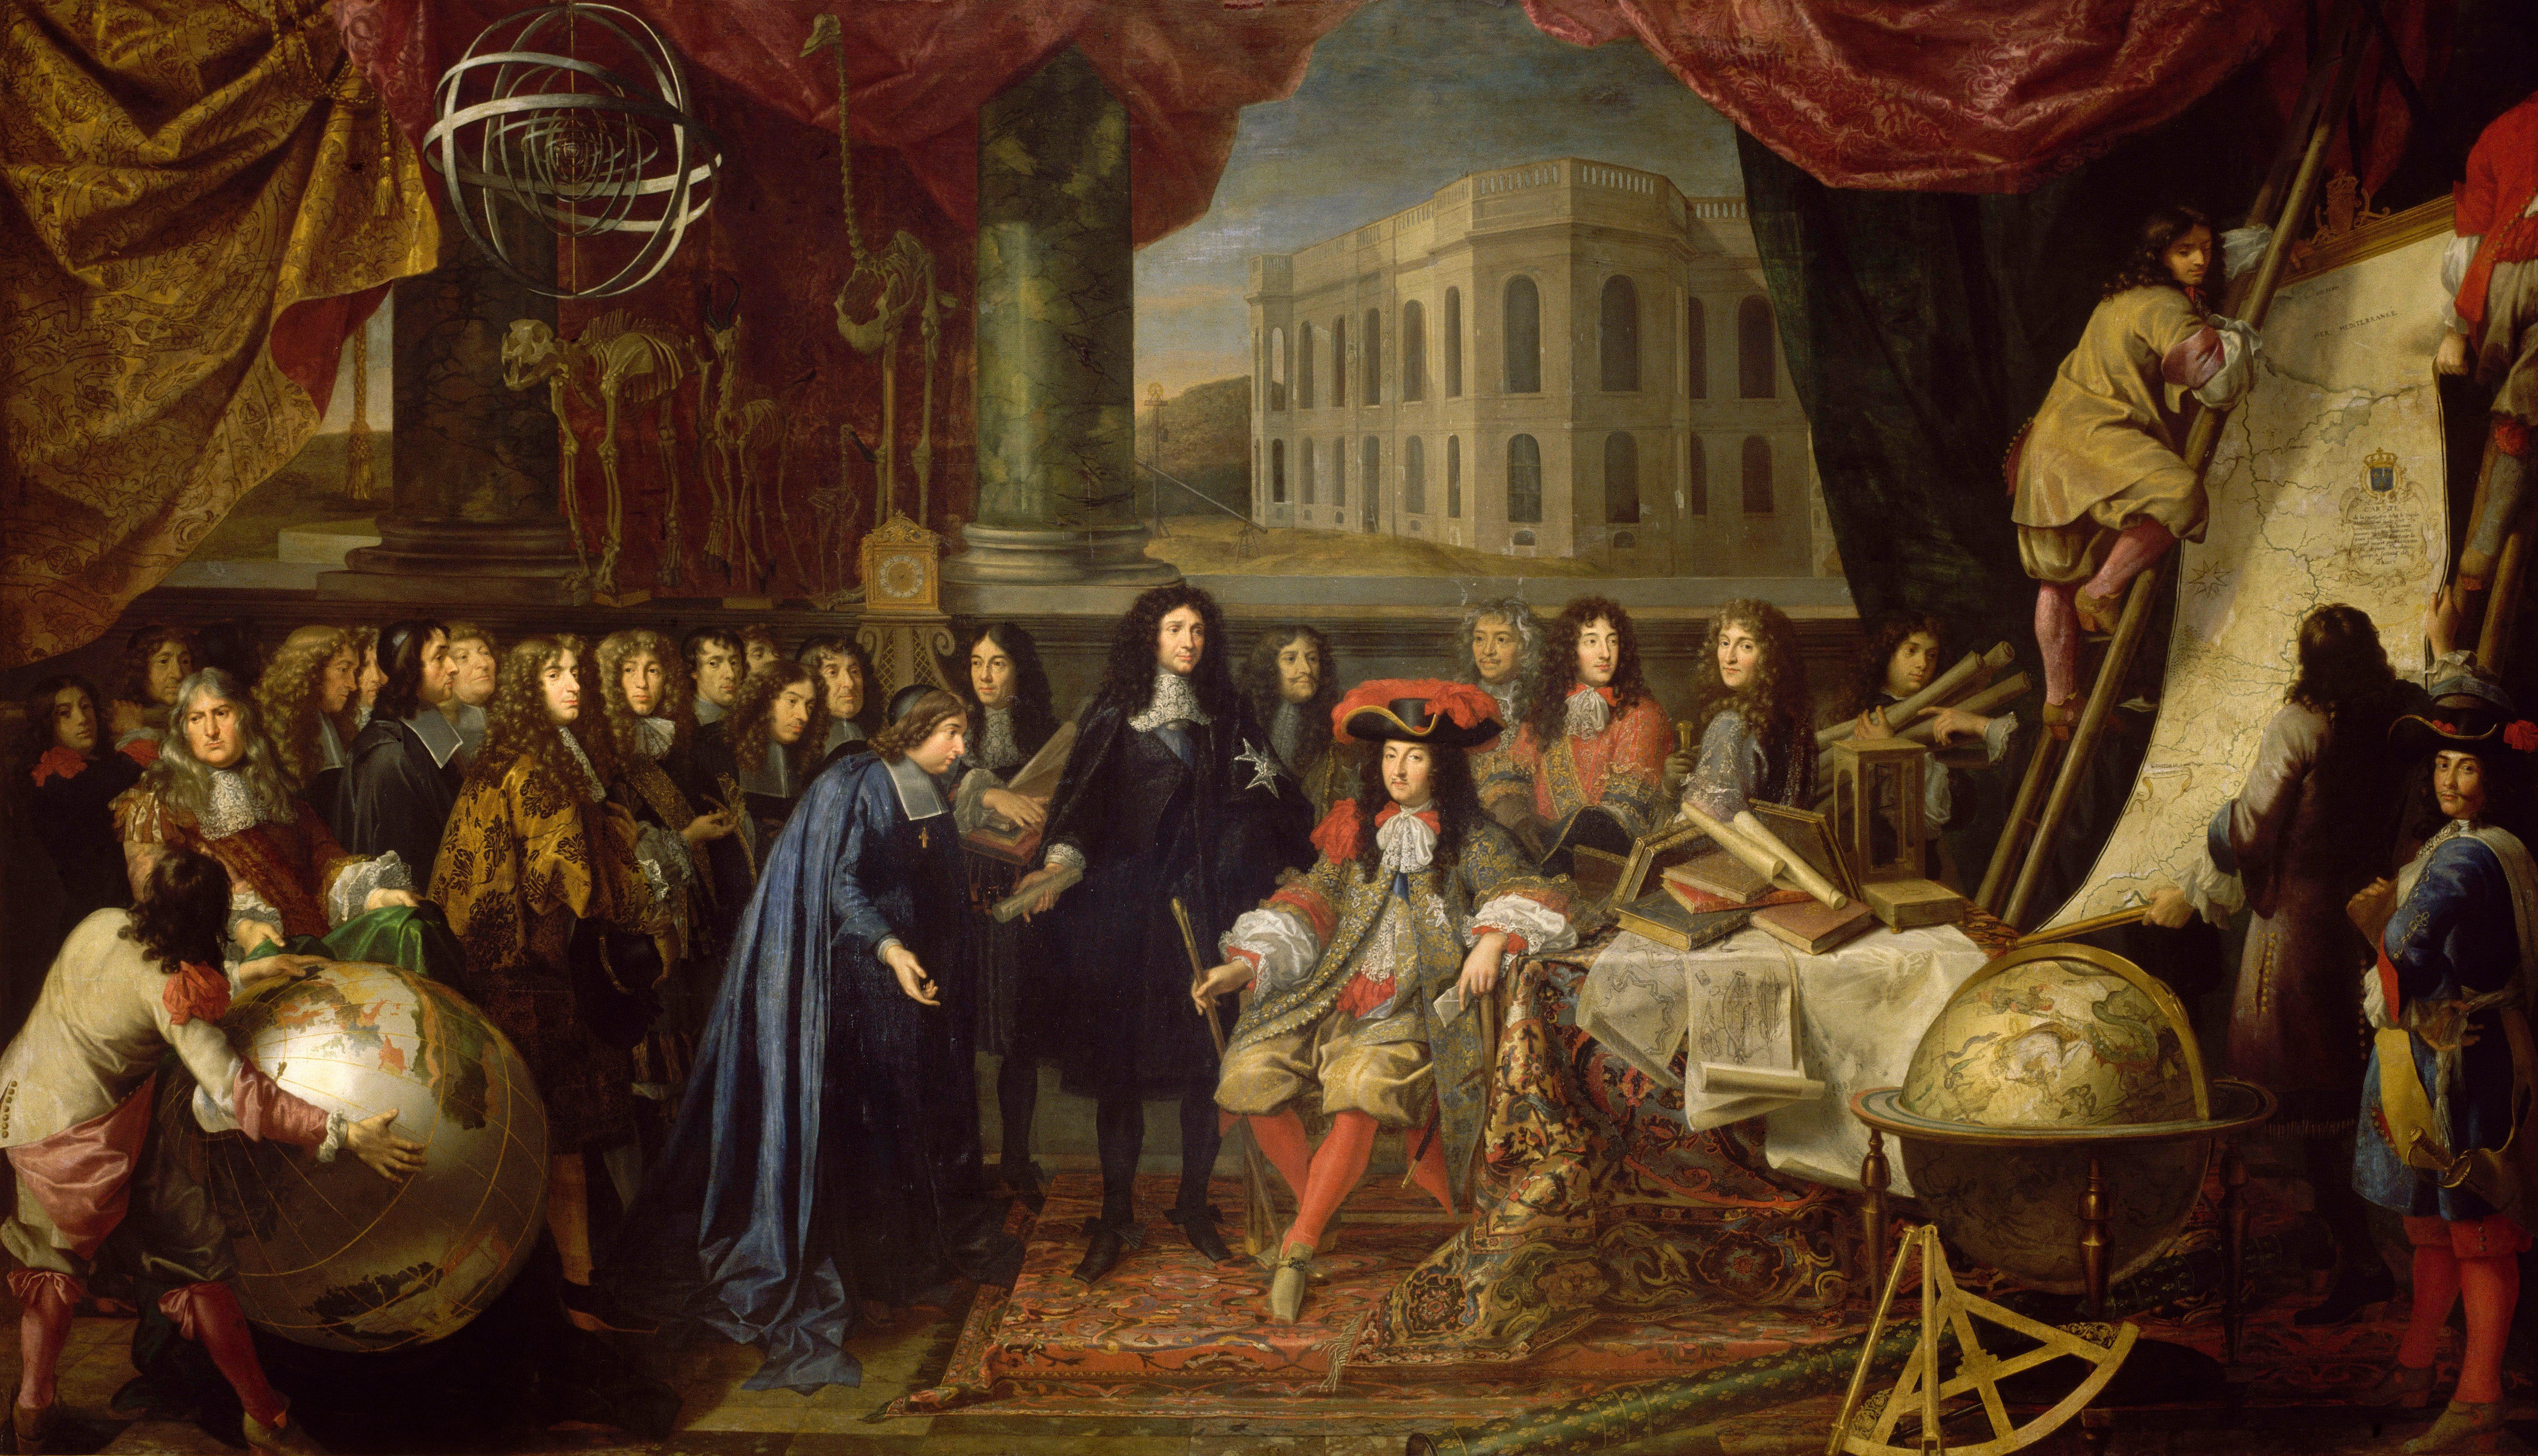 https://upload.wikimedia.org/wikipedia/commons/1/14/Colbert_Presenting_the_Members_of_the_Royal_Academy_of_Sciences_to_Louis_XIV_in_1667.PNG